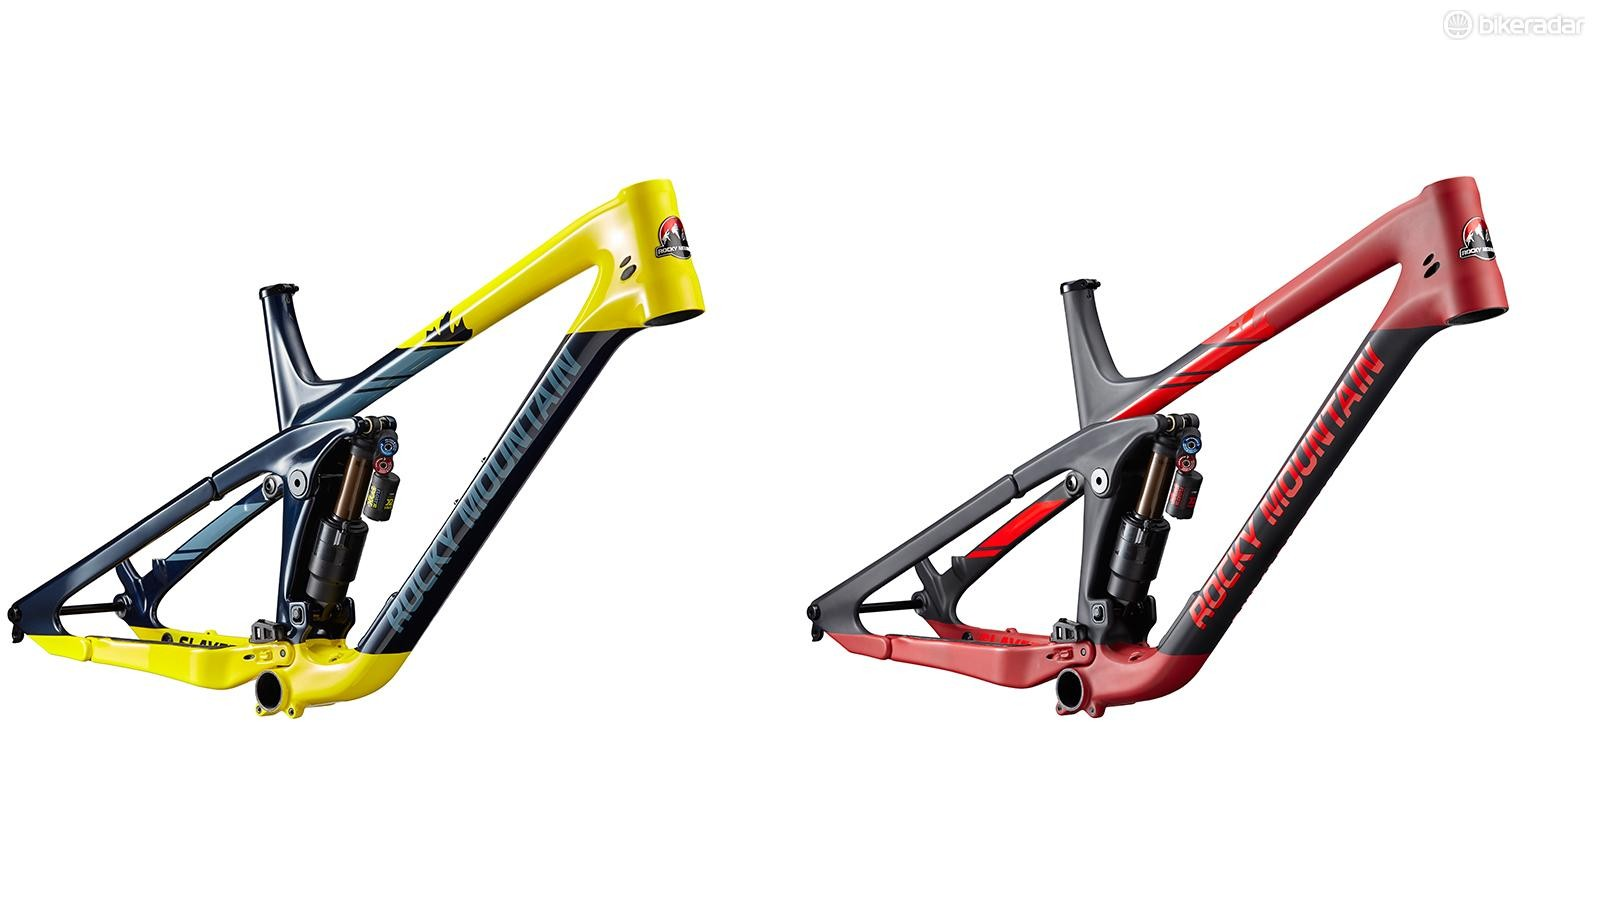 All four models use the same full carbon frame, offered in two colorways